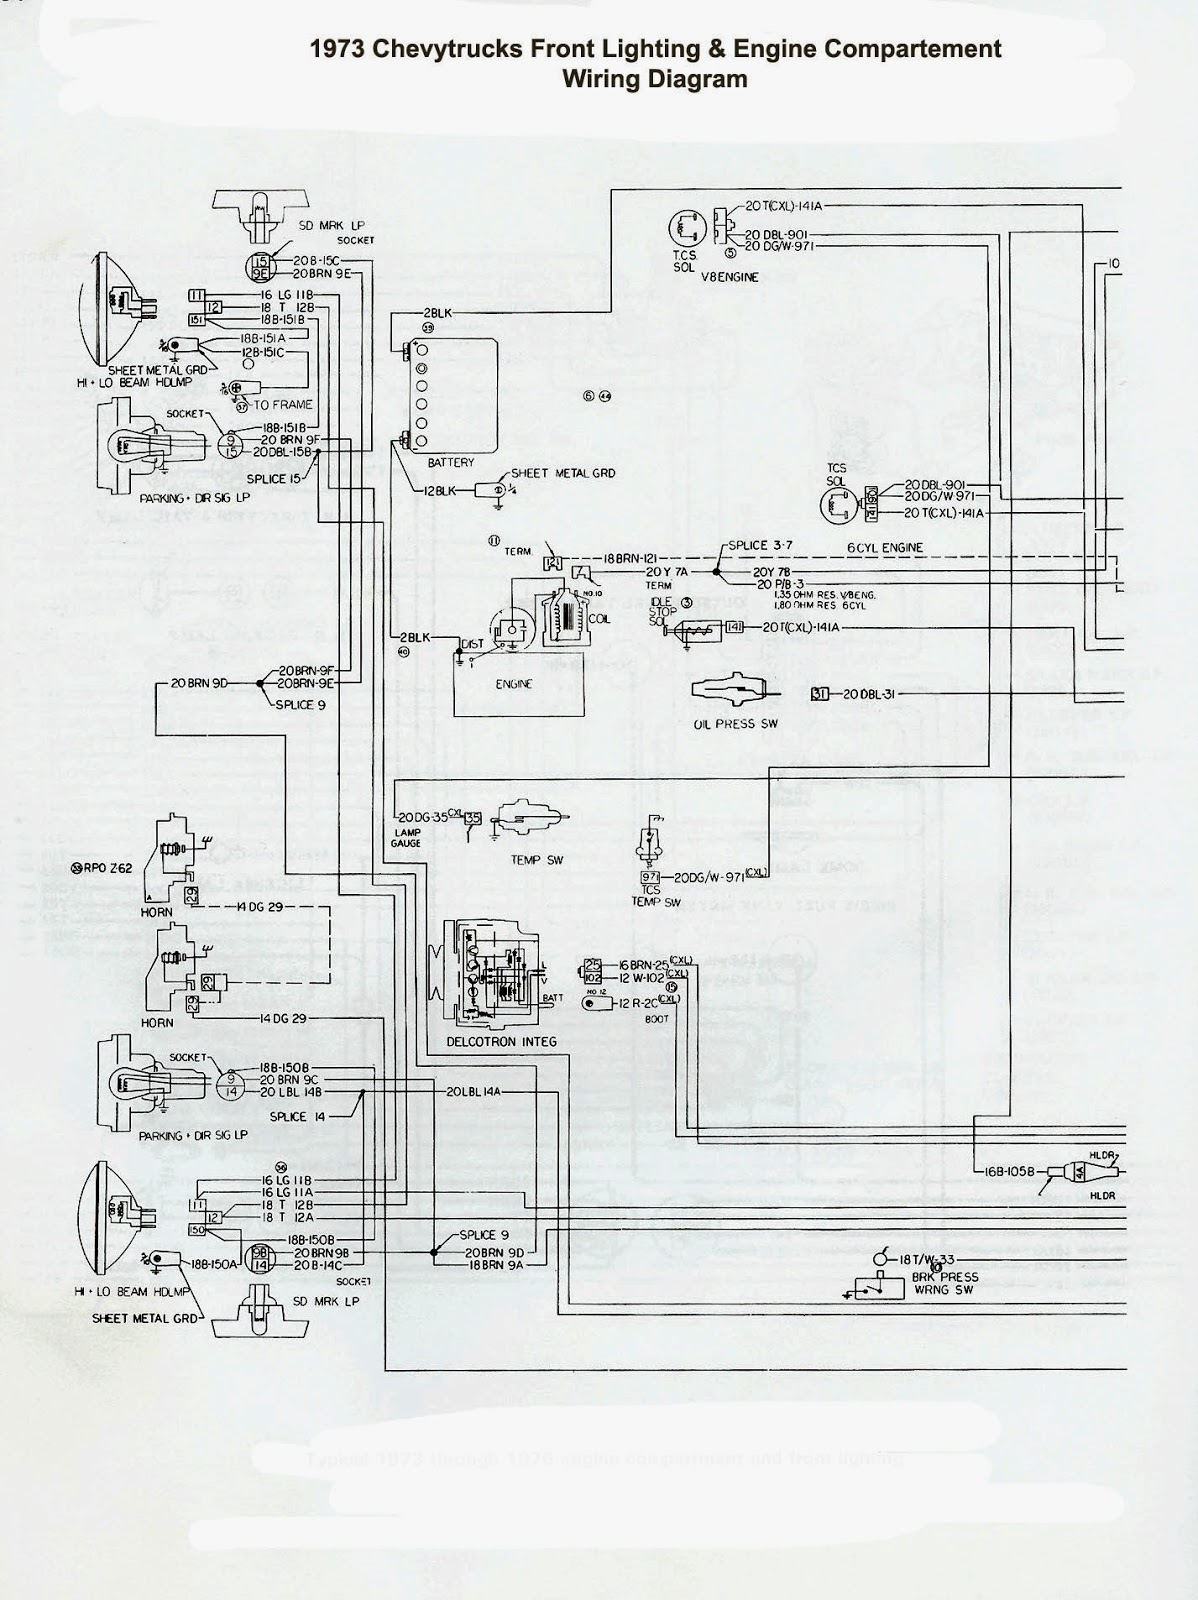 chevytruks.+engine+n+frontlight73 76_eng_frt_light+copy electrical winding wiring diagrams 1976 trans am wiring diagram at n-0.co